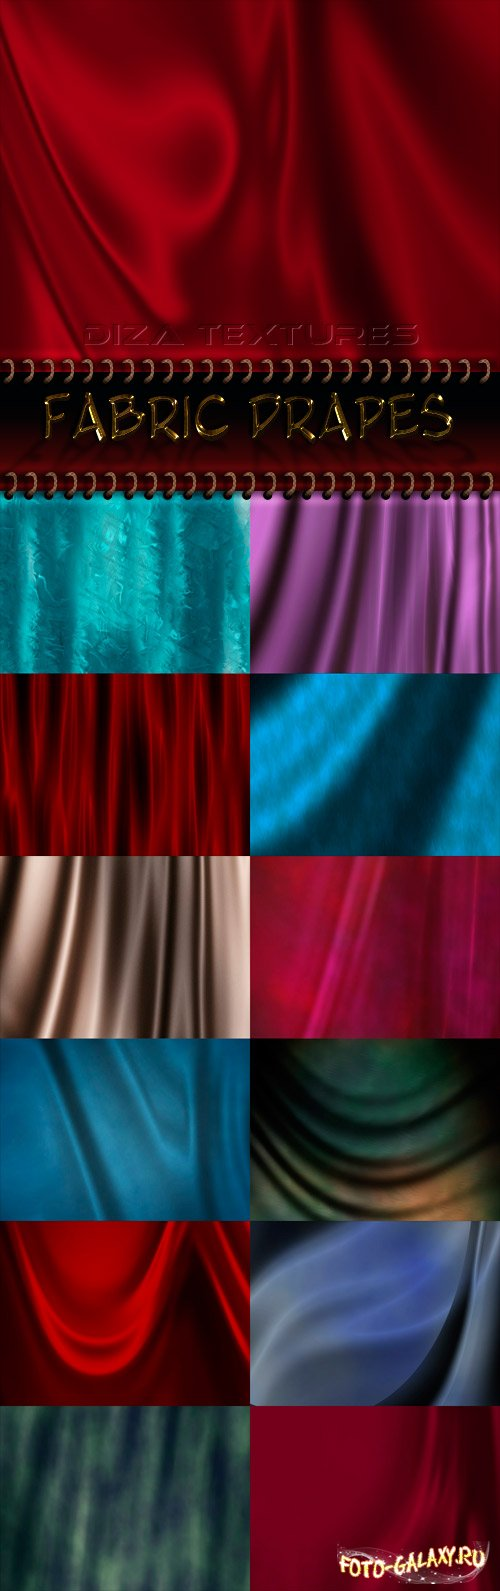 Fabric drapes textures